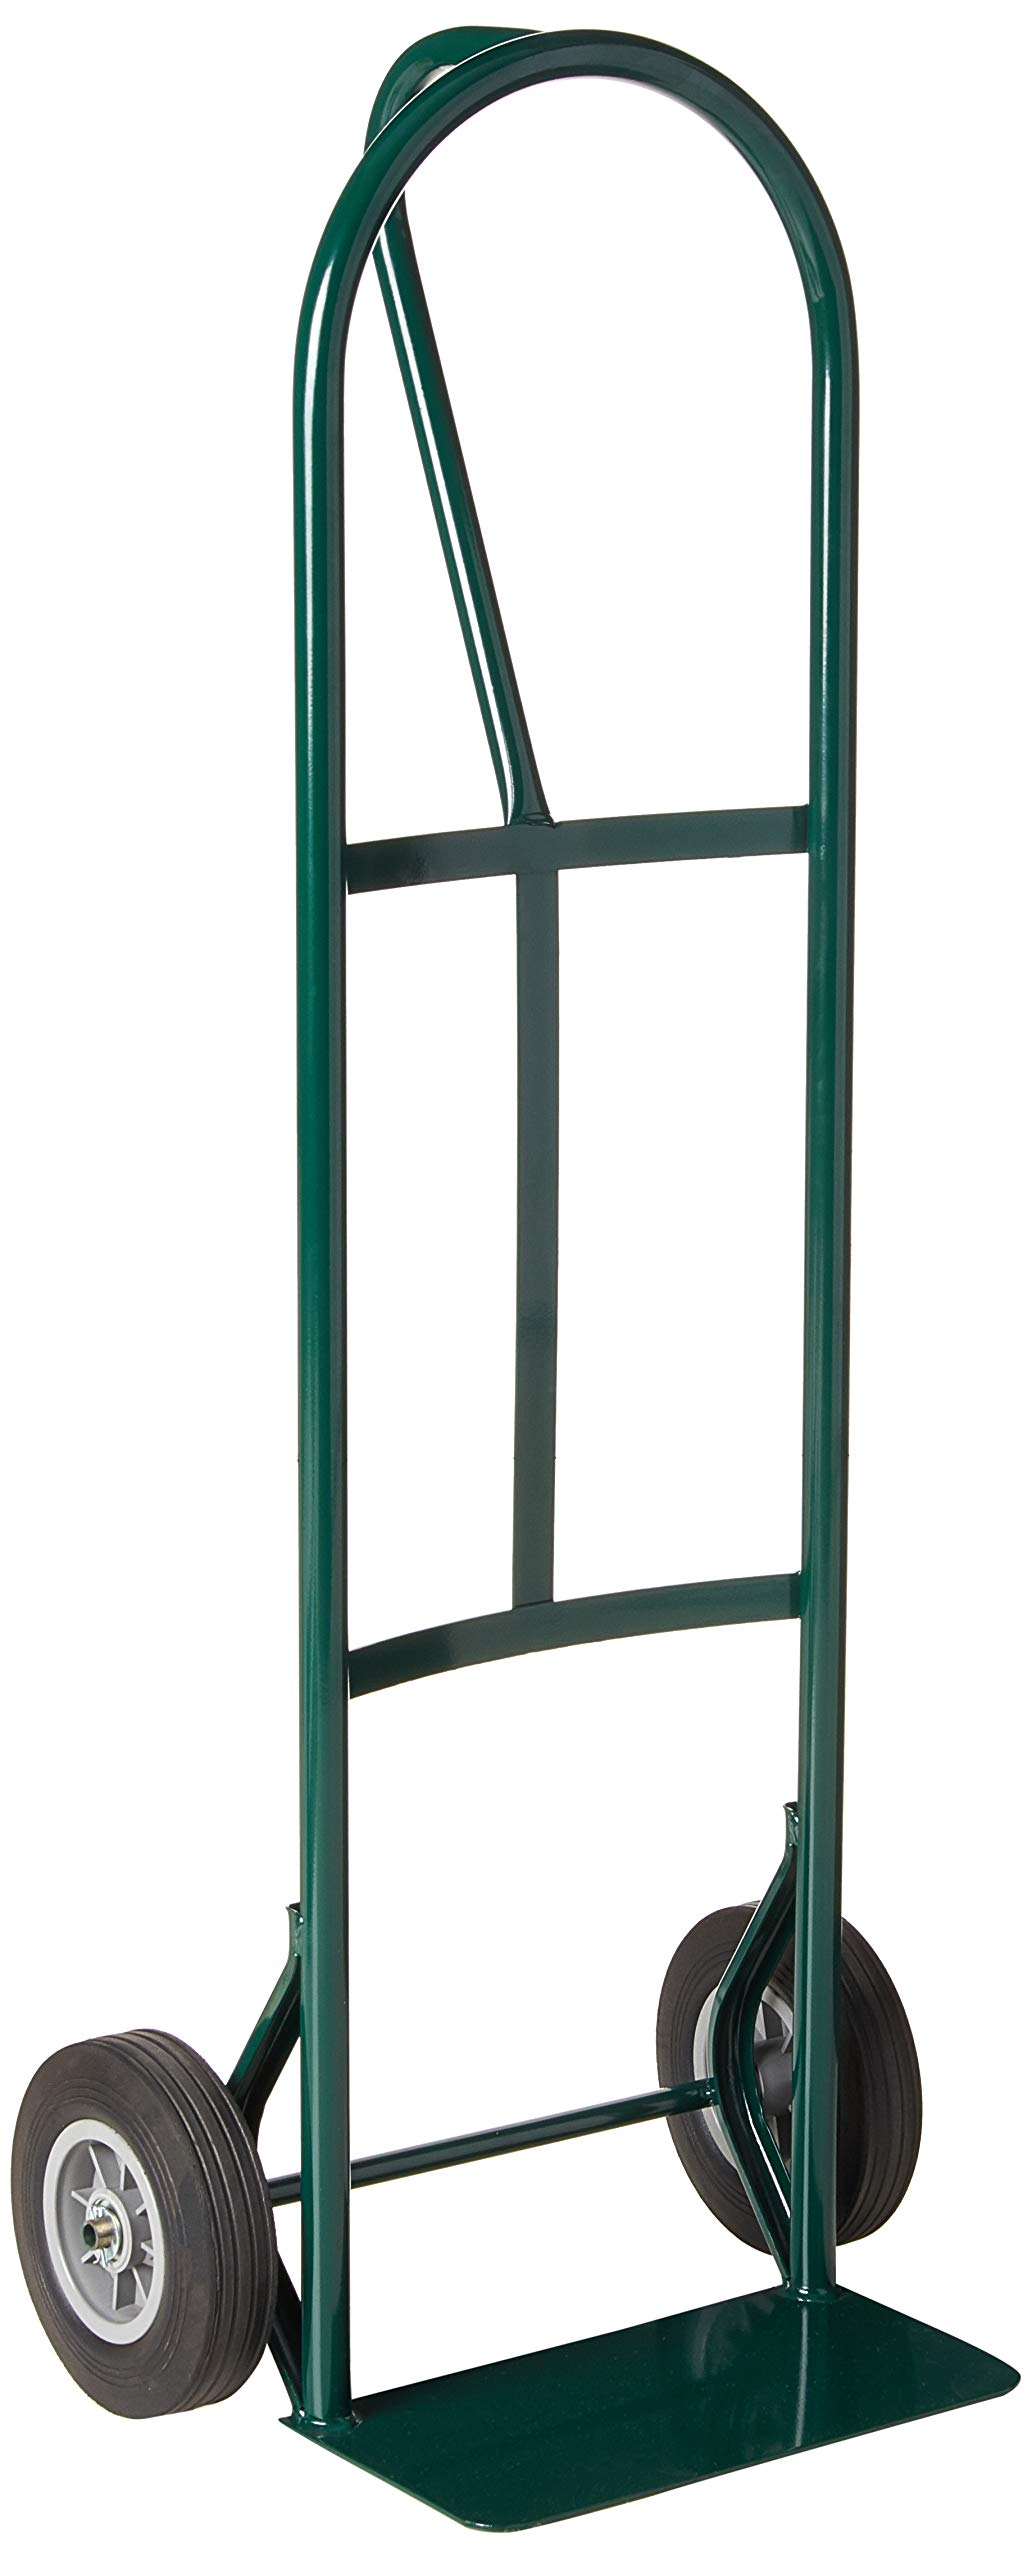 Harper Trucks BKB85 600 lb P-Handle with Solid Rubber Wheels Hand Truck, Green by Harper Trucks